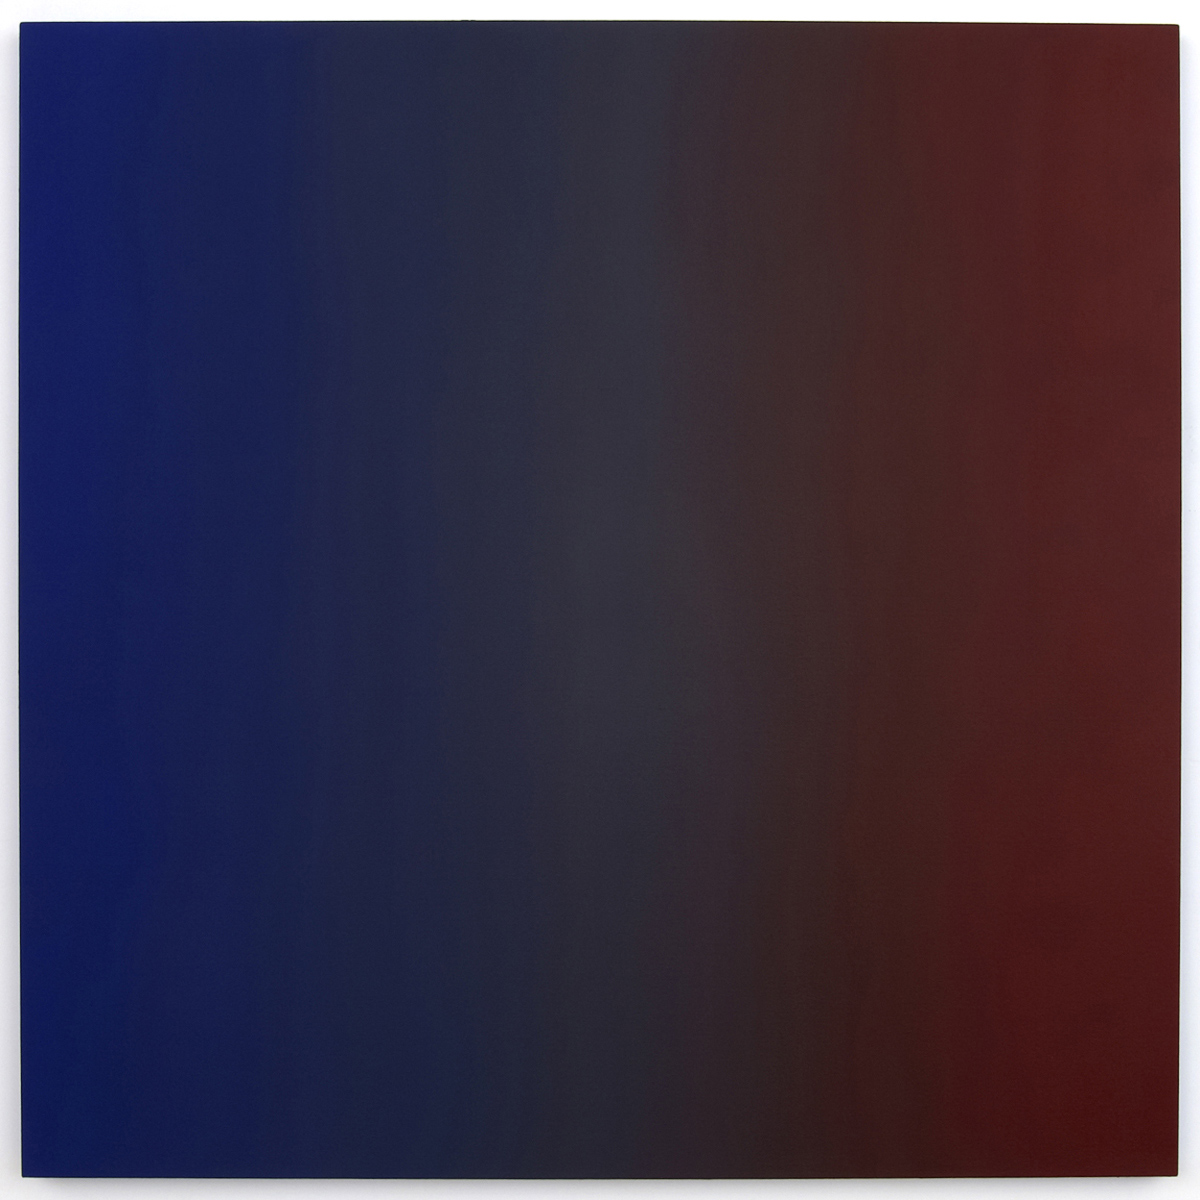 Imperial (Red Blue), Phase & Shifting Gray Series, 2008, oil on canvas, 48 x 48 in. (122 x 122 cm.)